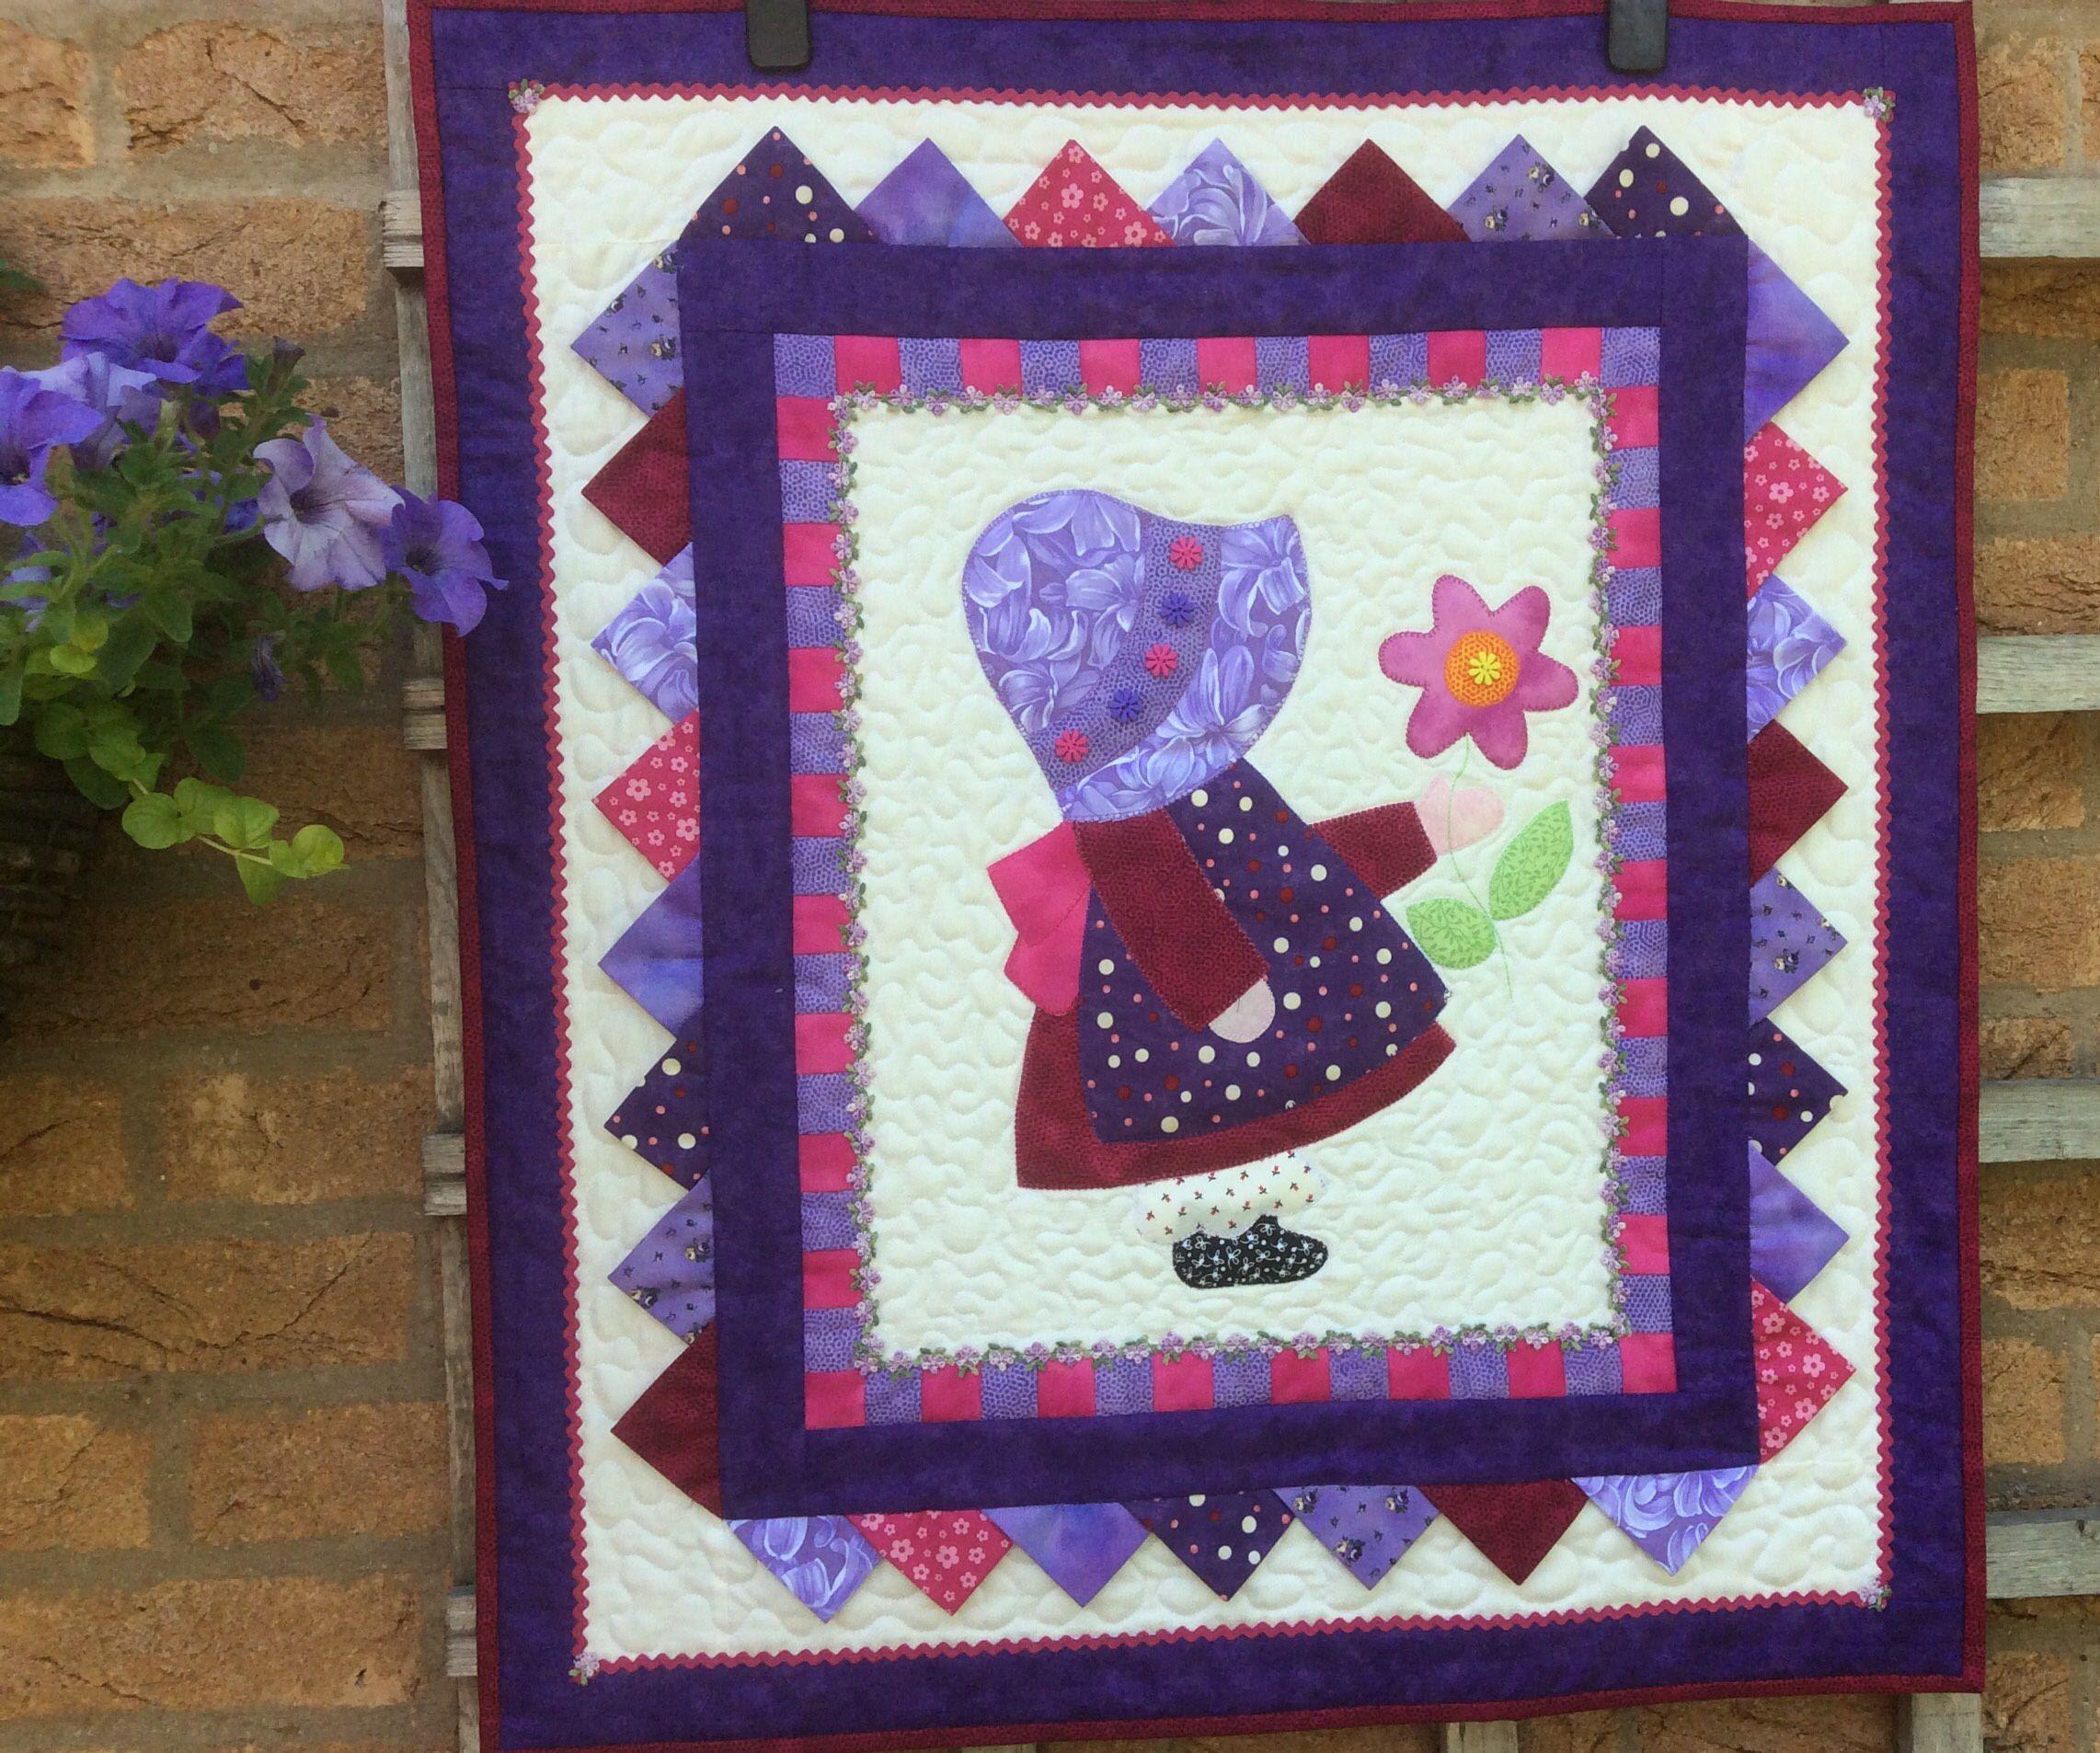 Quilted Wall Hanging.Sunbonnet Sue Wall Hanging.Handmade. Wall Art ... : handmade quilted wall hangings - Adamdwight.com